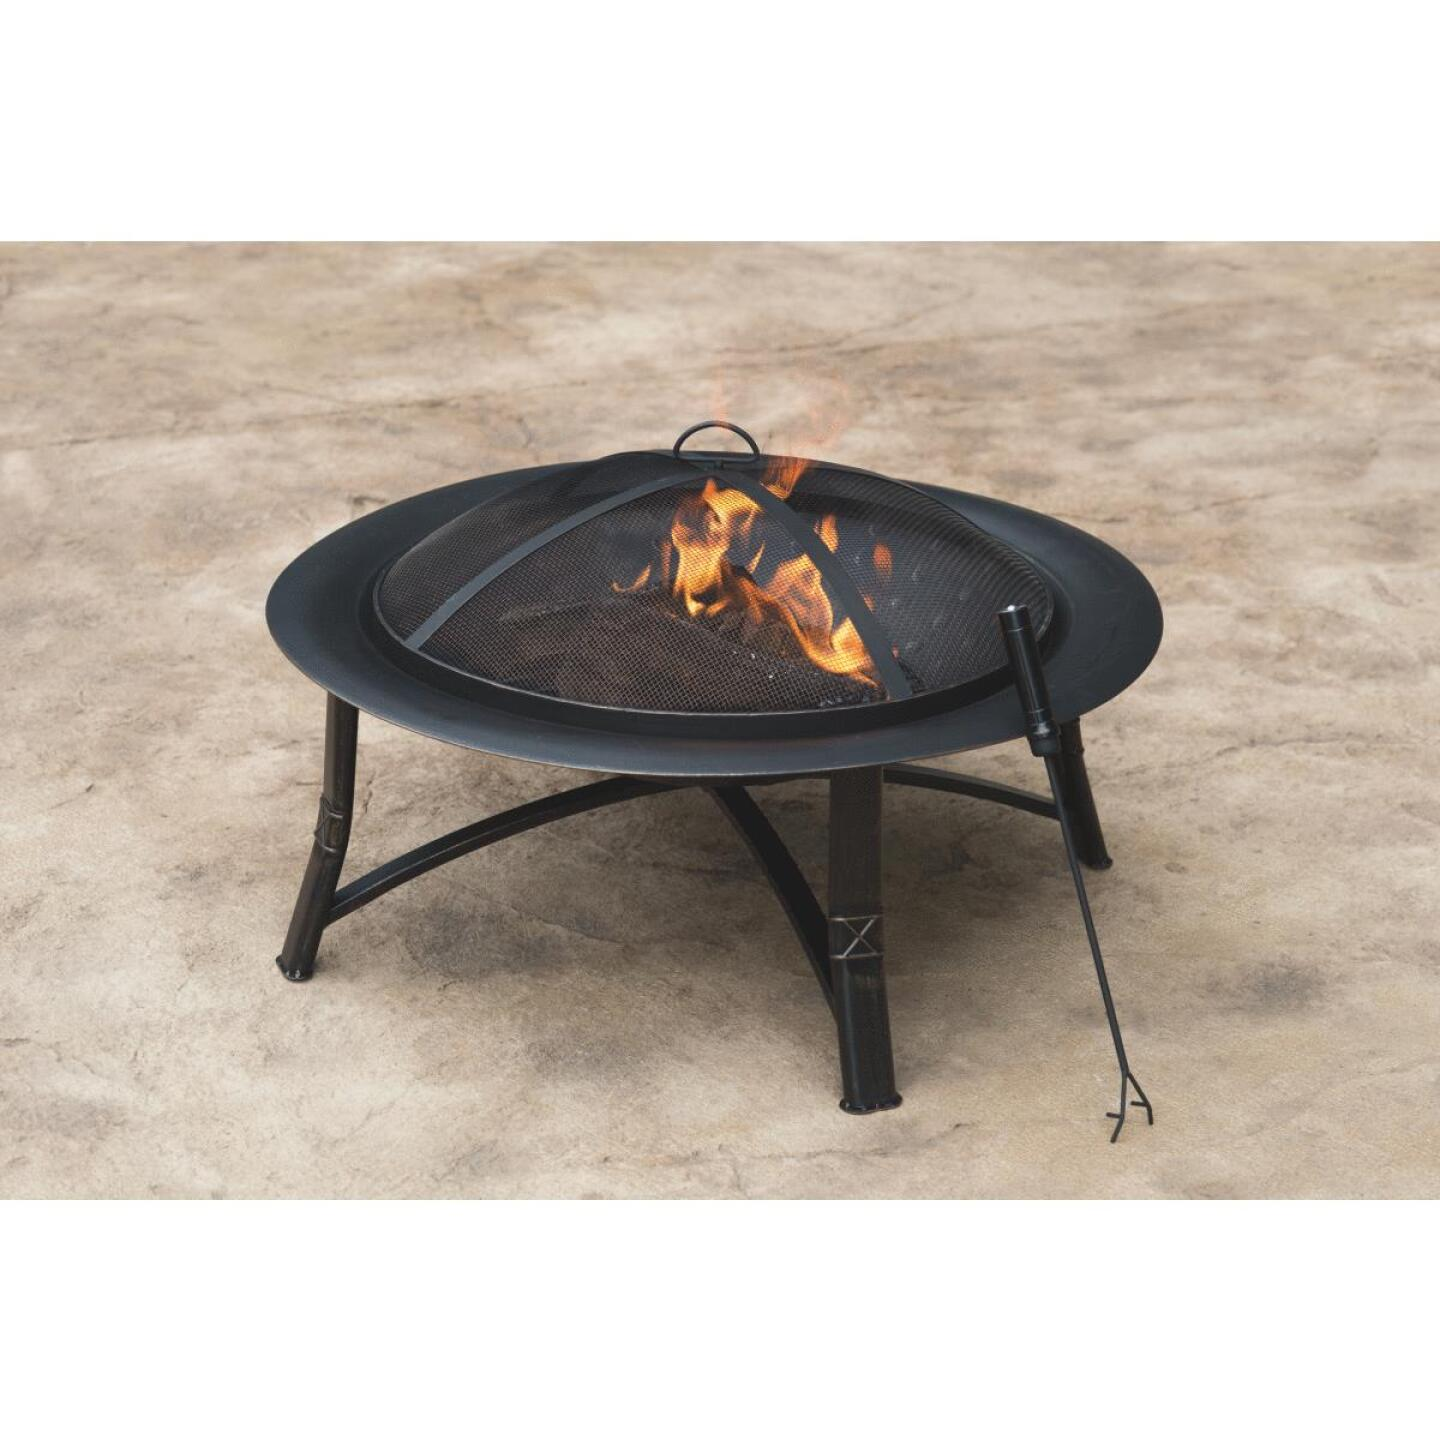 Outdoor Expressions 35 In. Antique Bronze Round Steel Fire Pit Image 3